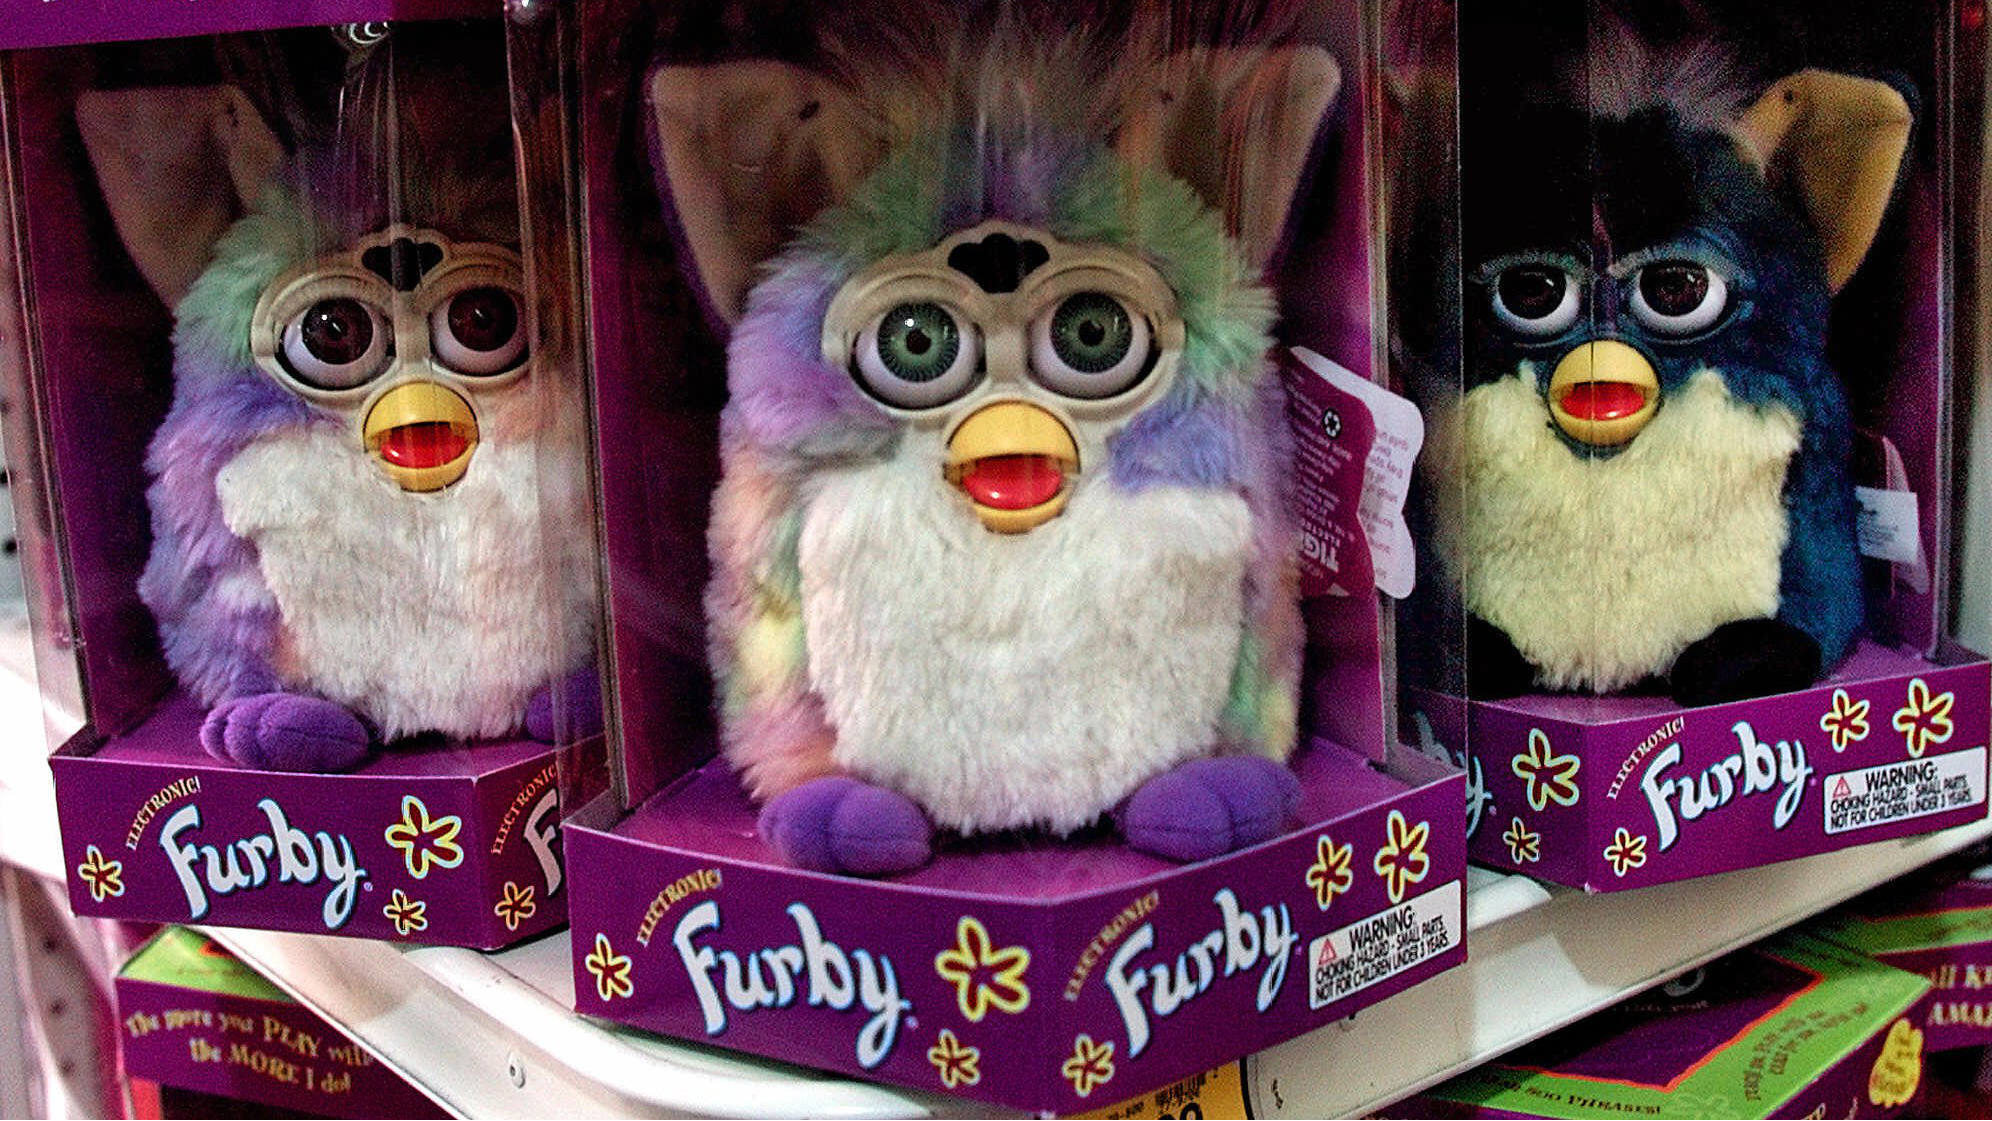 A display of Furby dolls, an interactive children's toy, is seen on display at a Toys 'R' Us store in Glendale, Calif., Wednesday, Sept. 29, 1999. The Sept. 21 earthquake that devastated parts of Taiwan is sending tremors through the toy and personal computer industries, which rely on Taiwanese semiconductors for products ranging from personal computers to interactive Furby dolls. (AP Photo/Damian Dovarganes